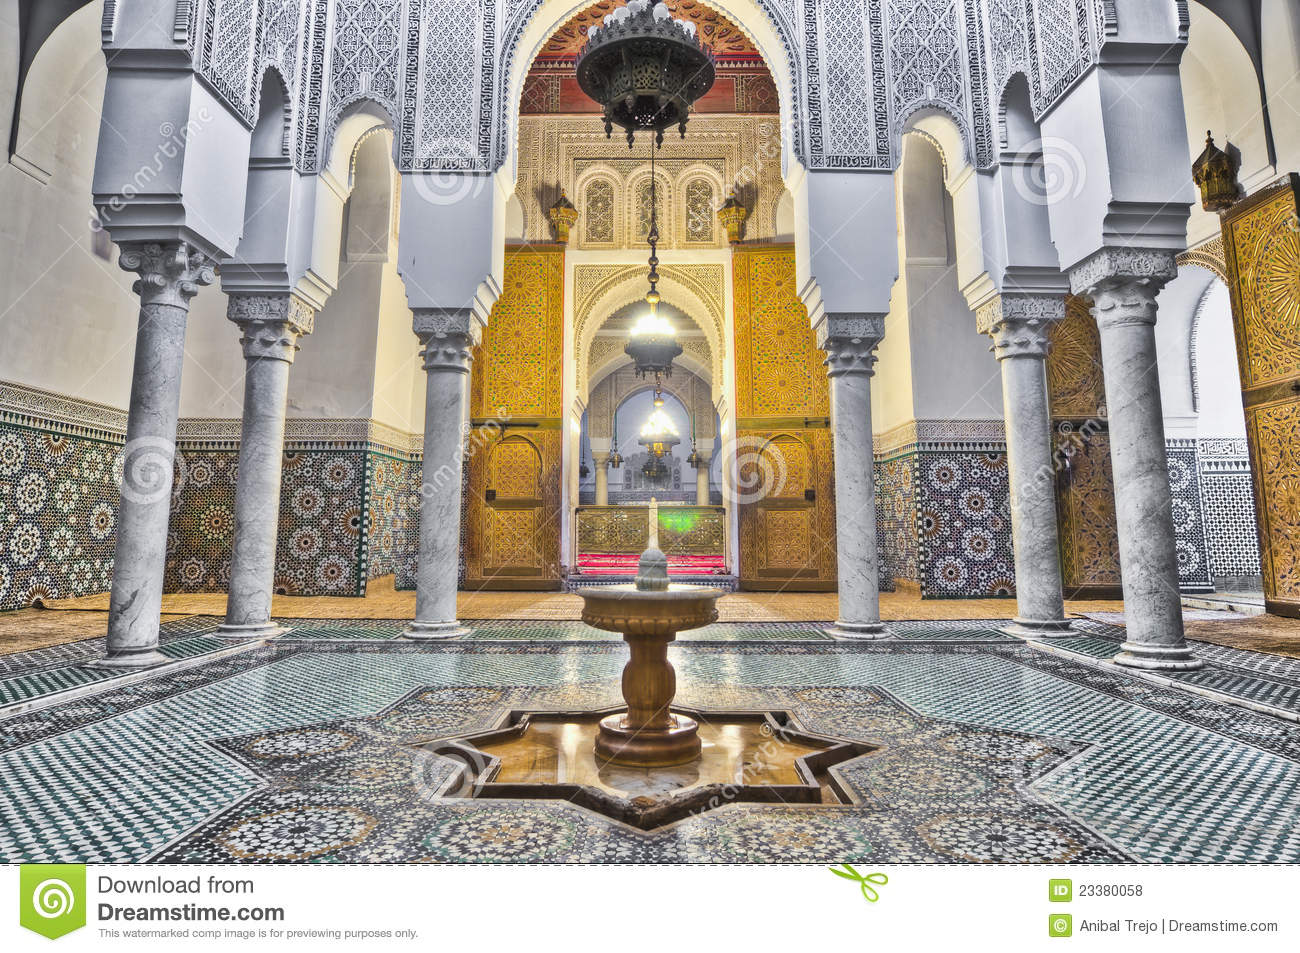 Meknes Morocco  city photo : Moulay Ismail Mausoleum At Meknes, Morocco Royalty Free Stock Photos ...